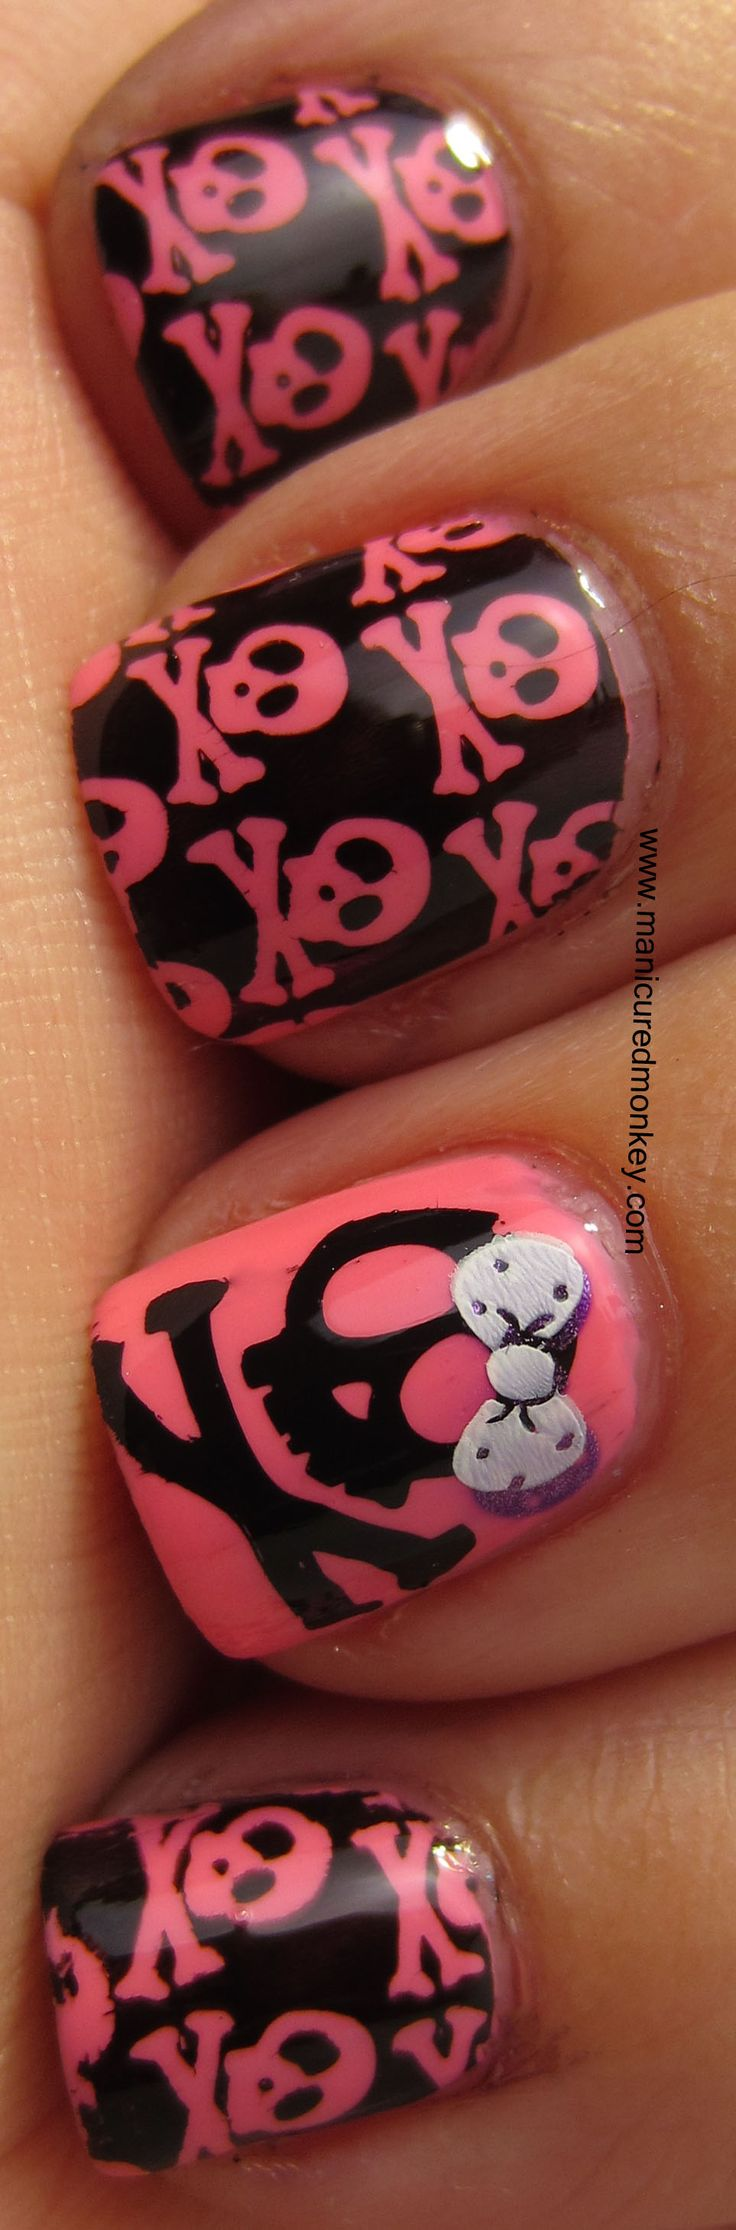 Skulls & Bows - BLACK and pink - NAILS - essie (color Knockout Pout) and Wet N Wild nail polish (color Black Creme) - click for tutorial - design - art